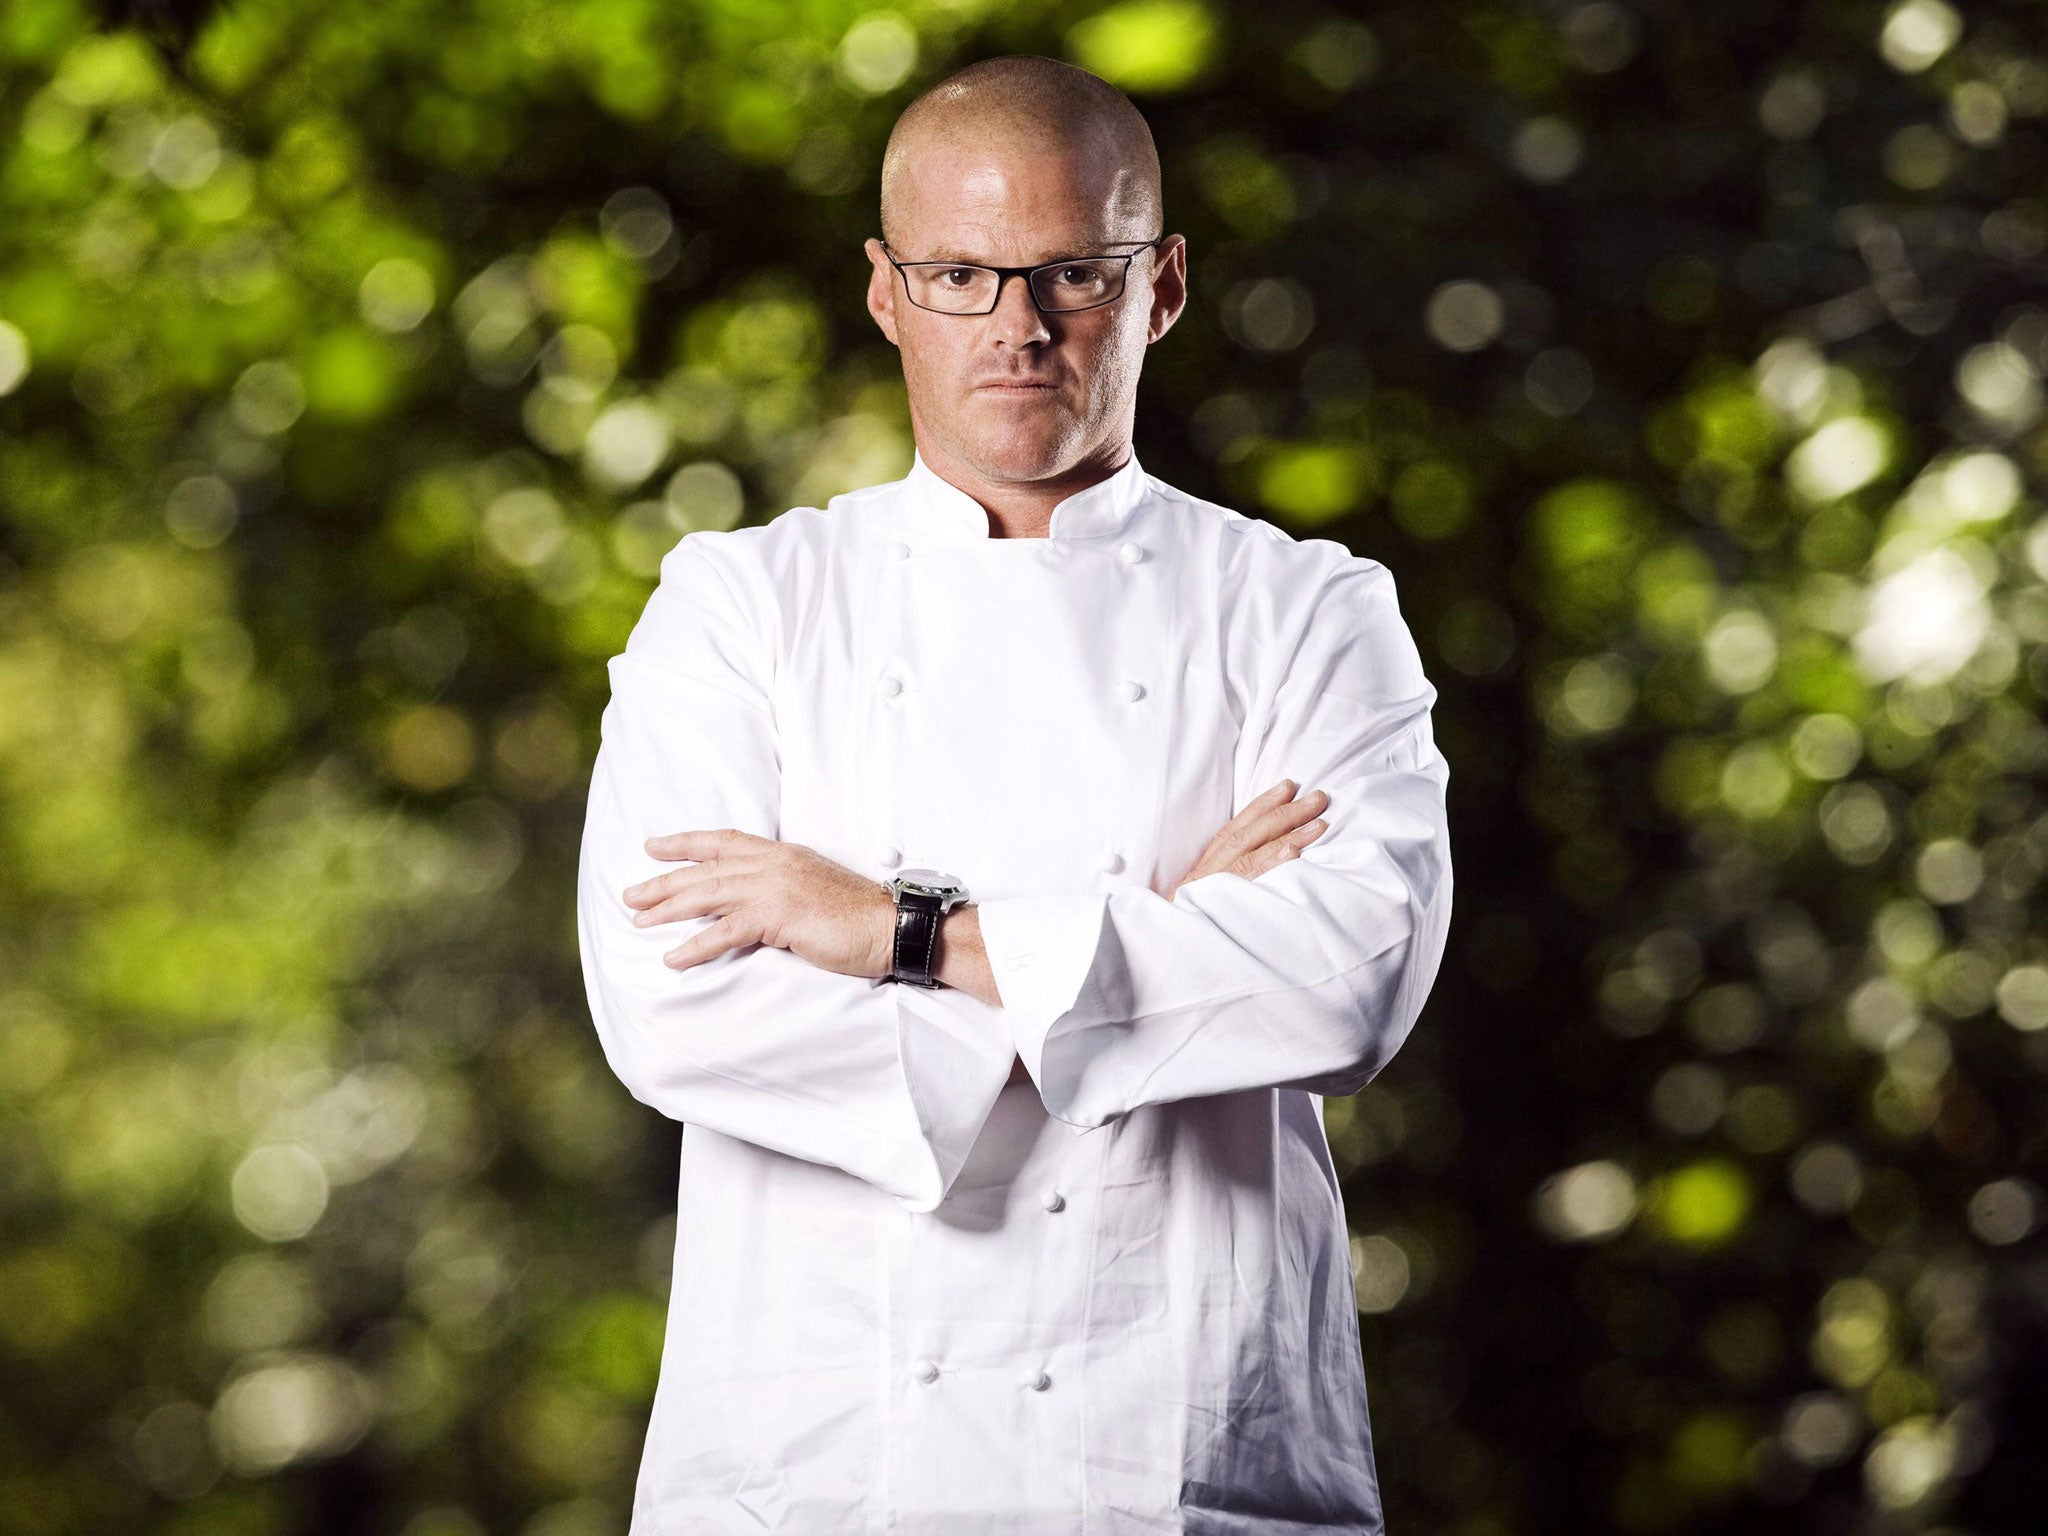 Chef from Heston Blumenthal restaurant is suing for £200,000 over chronic wrist pain caused by cooking 1